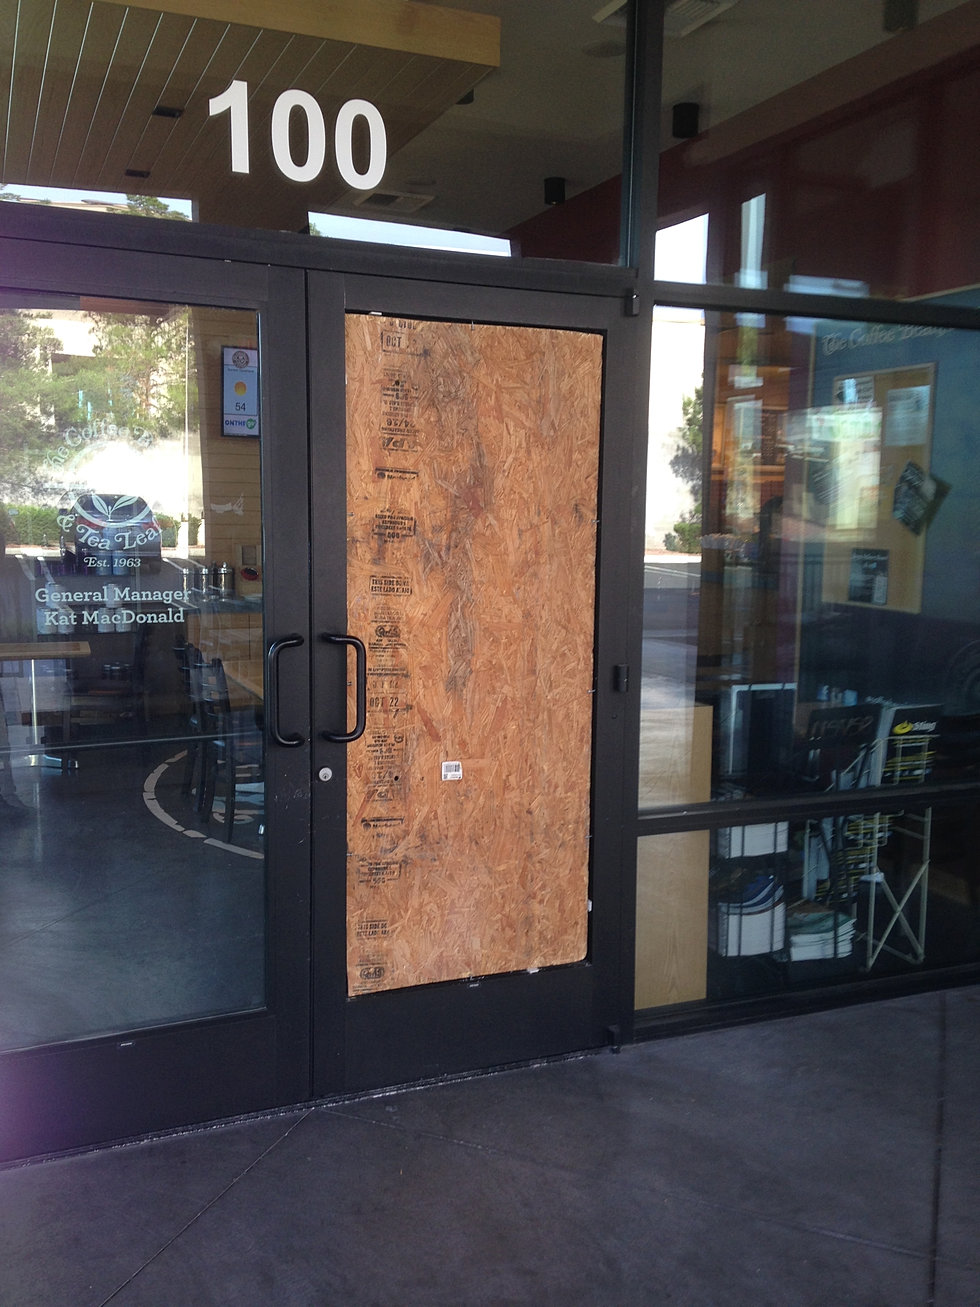 Frameless glass storefront door - Commercial Storefront Door Board Up